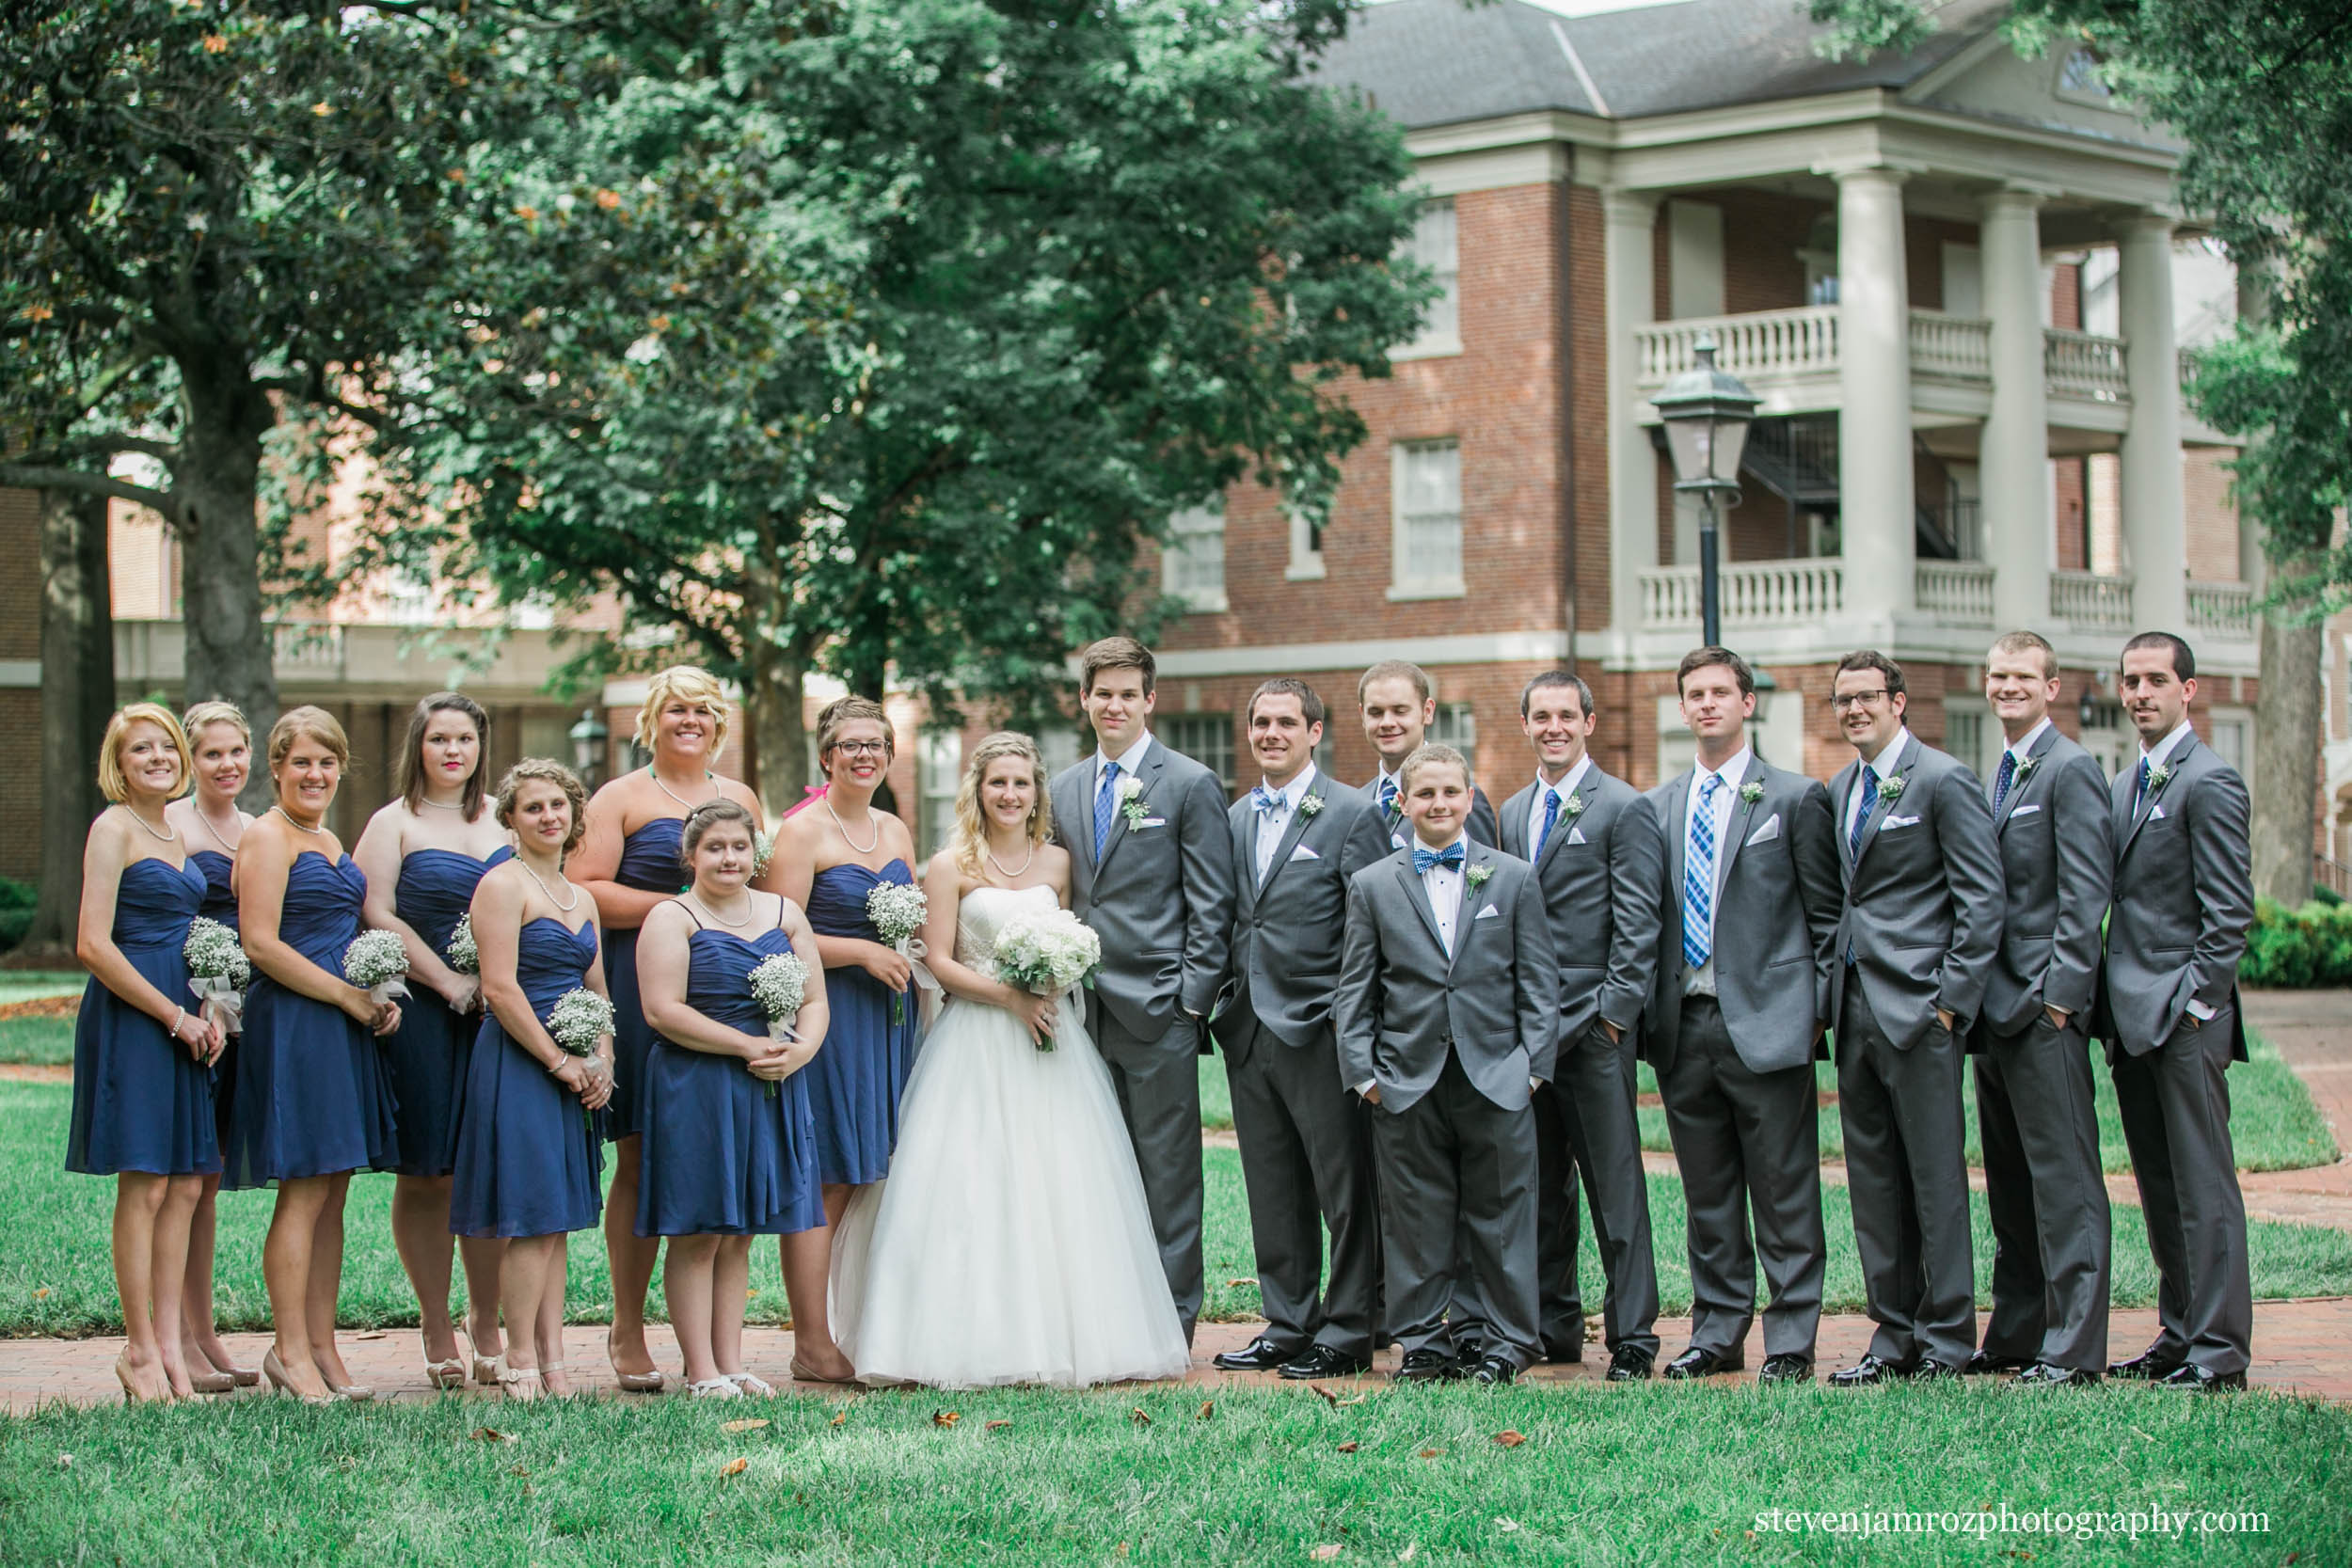 peace-college-raleigh-bridal-party-wedding-steven-jamroz-photography-0578.jpg